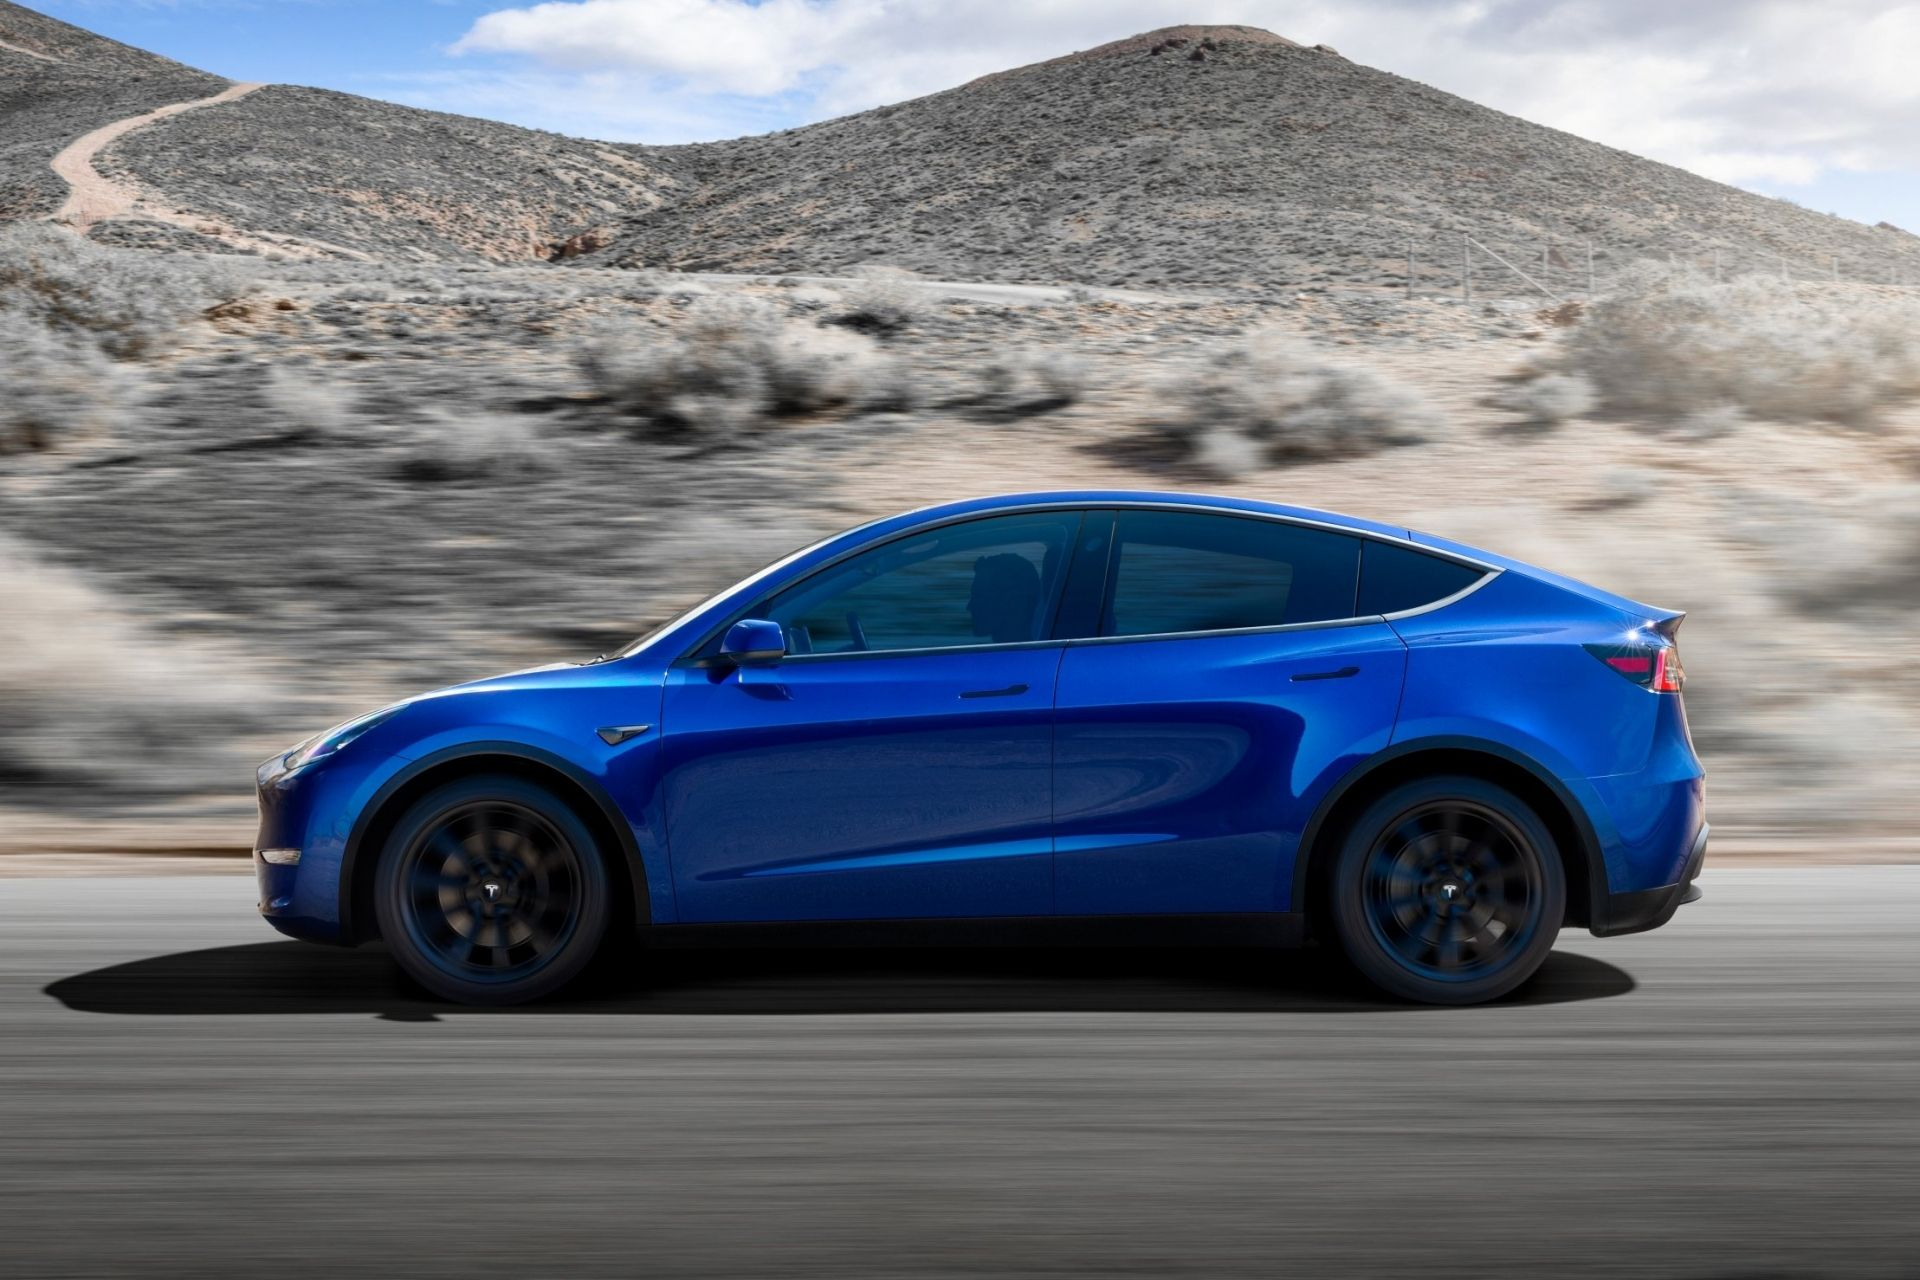 HD 2021 Tesla Model Y wallpapers and photos and images collection 1920x1280